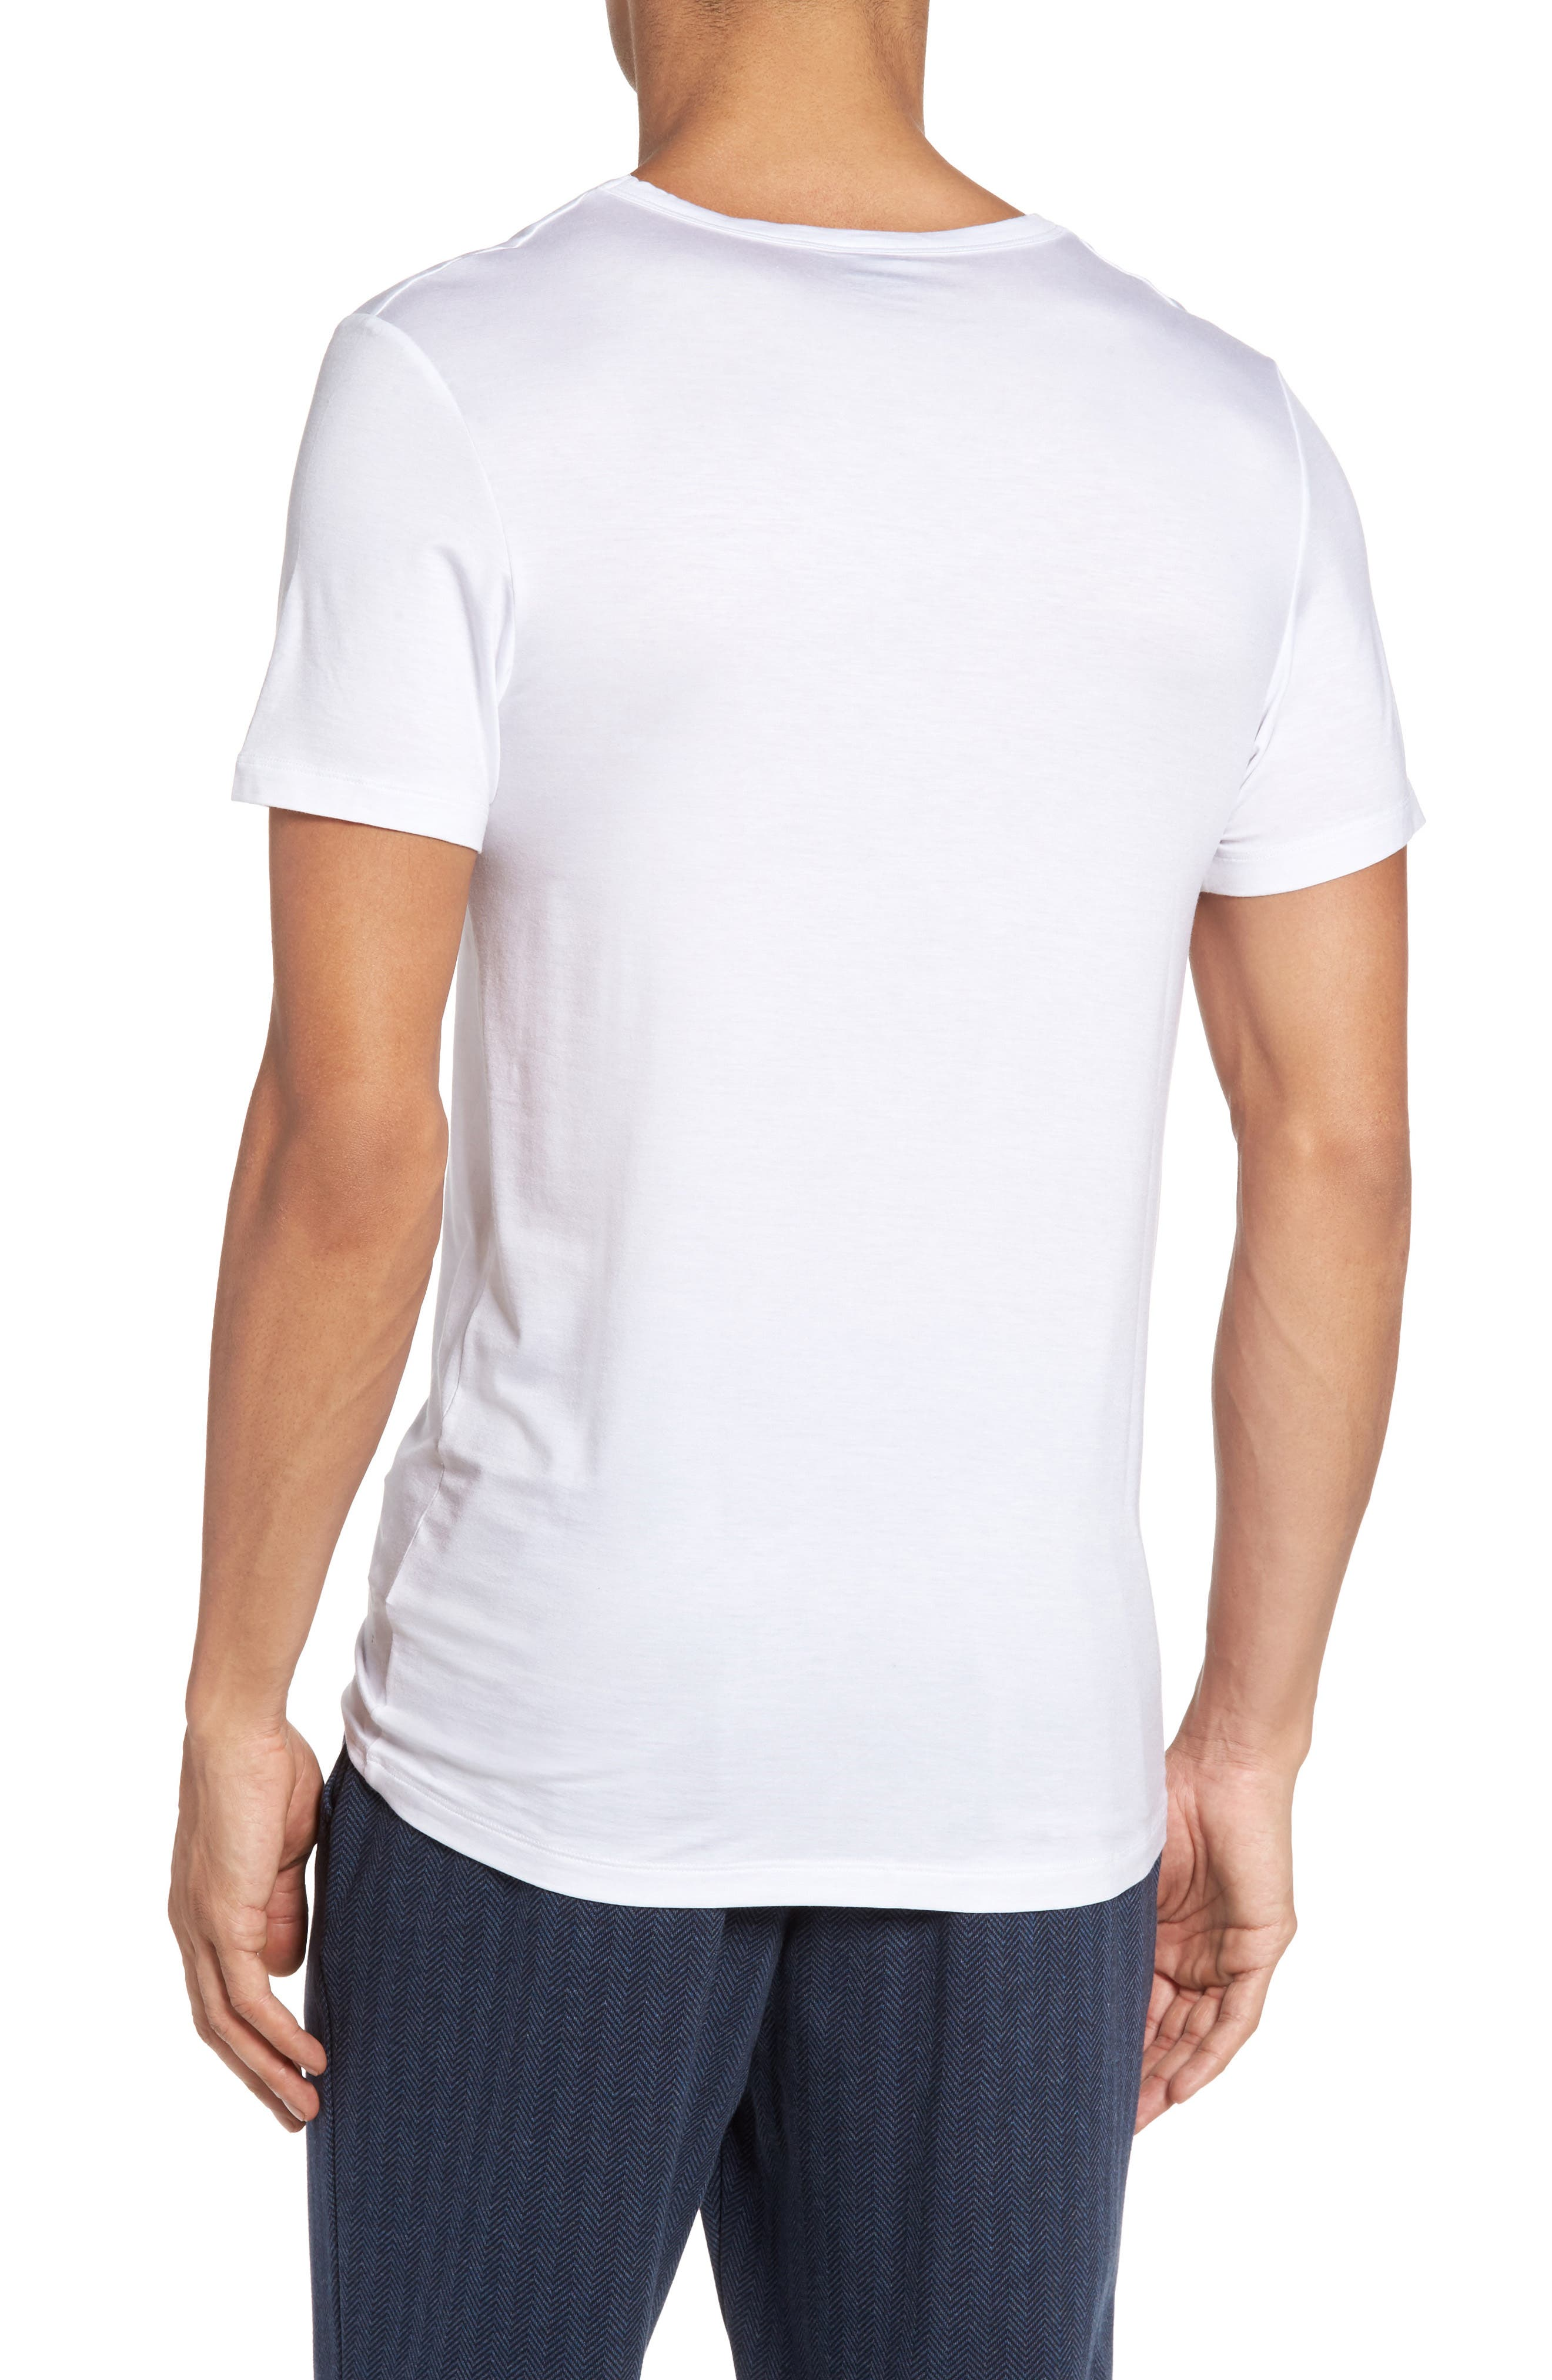 SeaCell<sup>®</sup> Blend T-Shirt,                             Alternate thumbnail 2, color,                             100